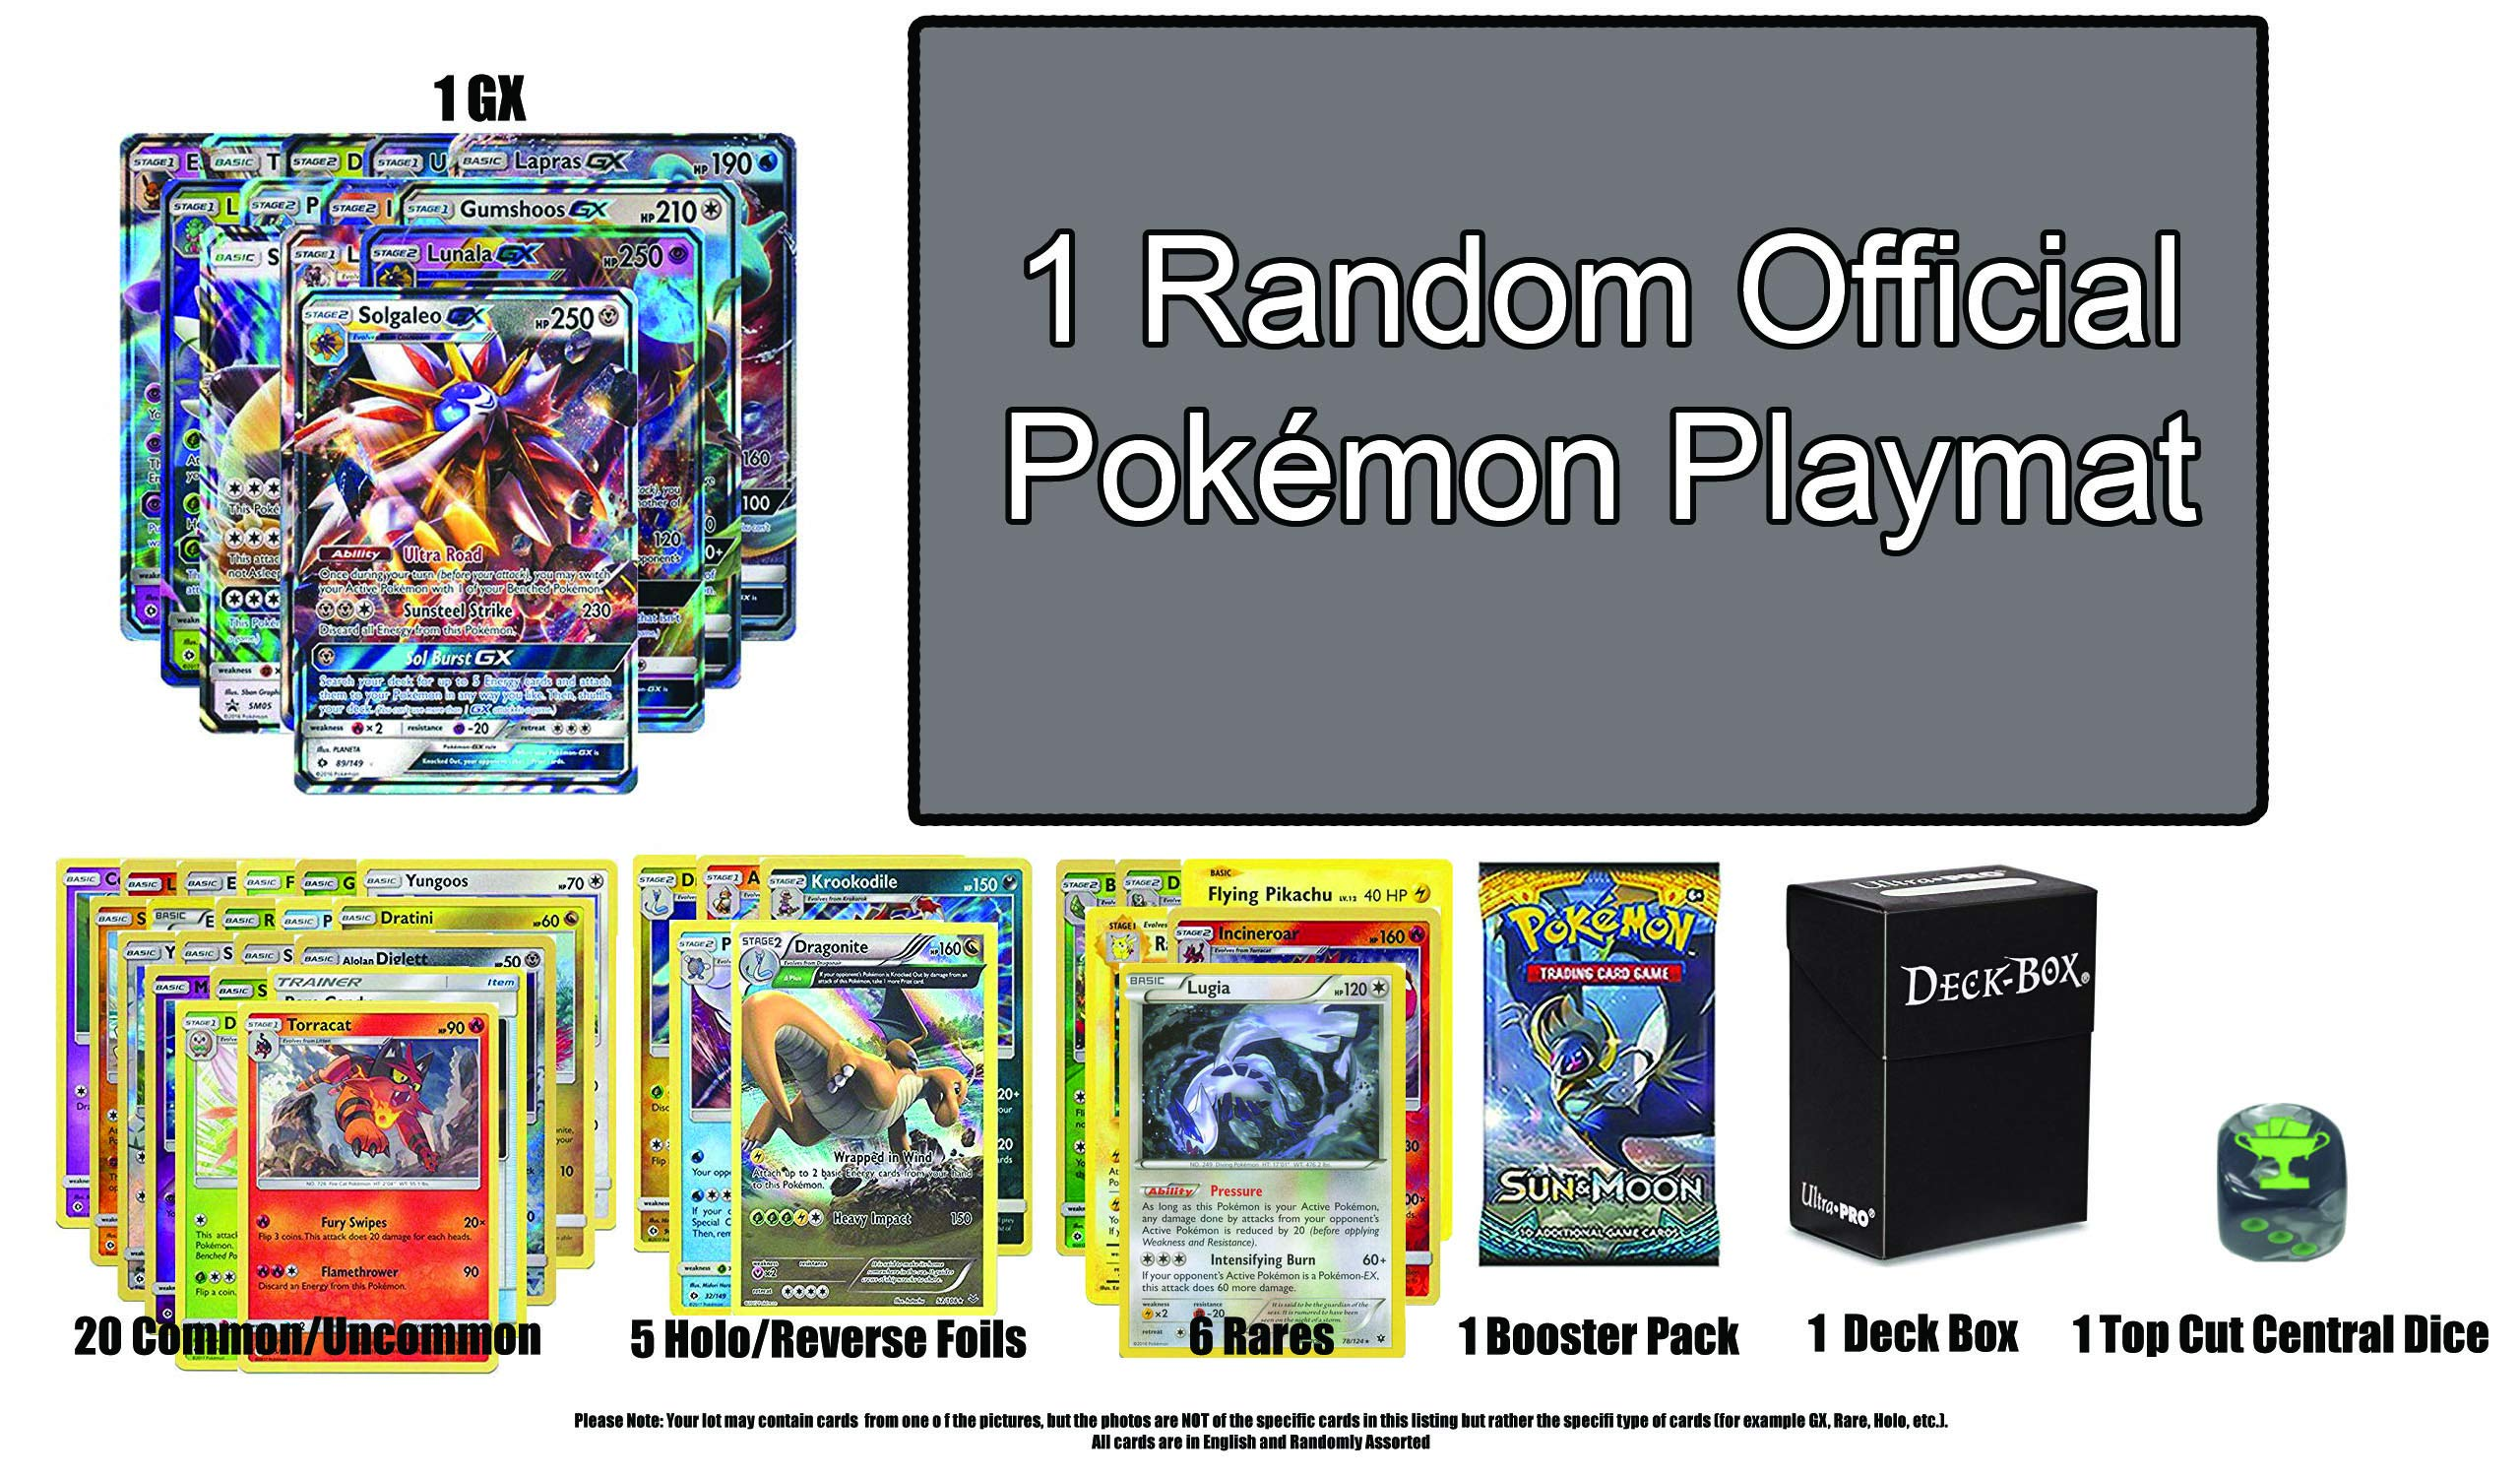 Pokemon GX Guaranteed with Booster Pack, 6 Rare Cards, 5 Holo/Reverse Holo Cards, 20 Regular Pokemon Cards, Deck Box, Top Cut Central Exclusive Dice and Official Pokemon Playmat